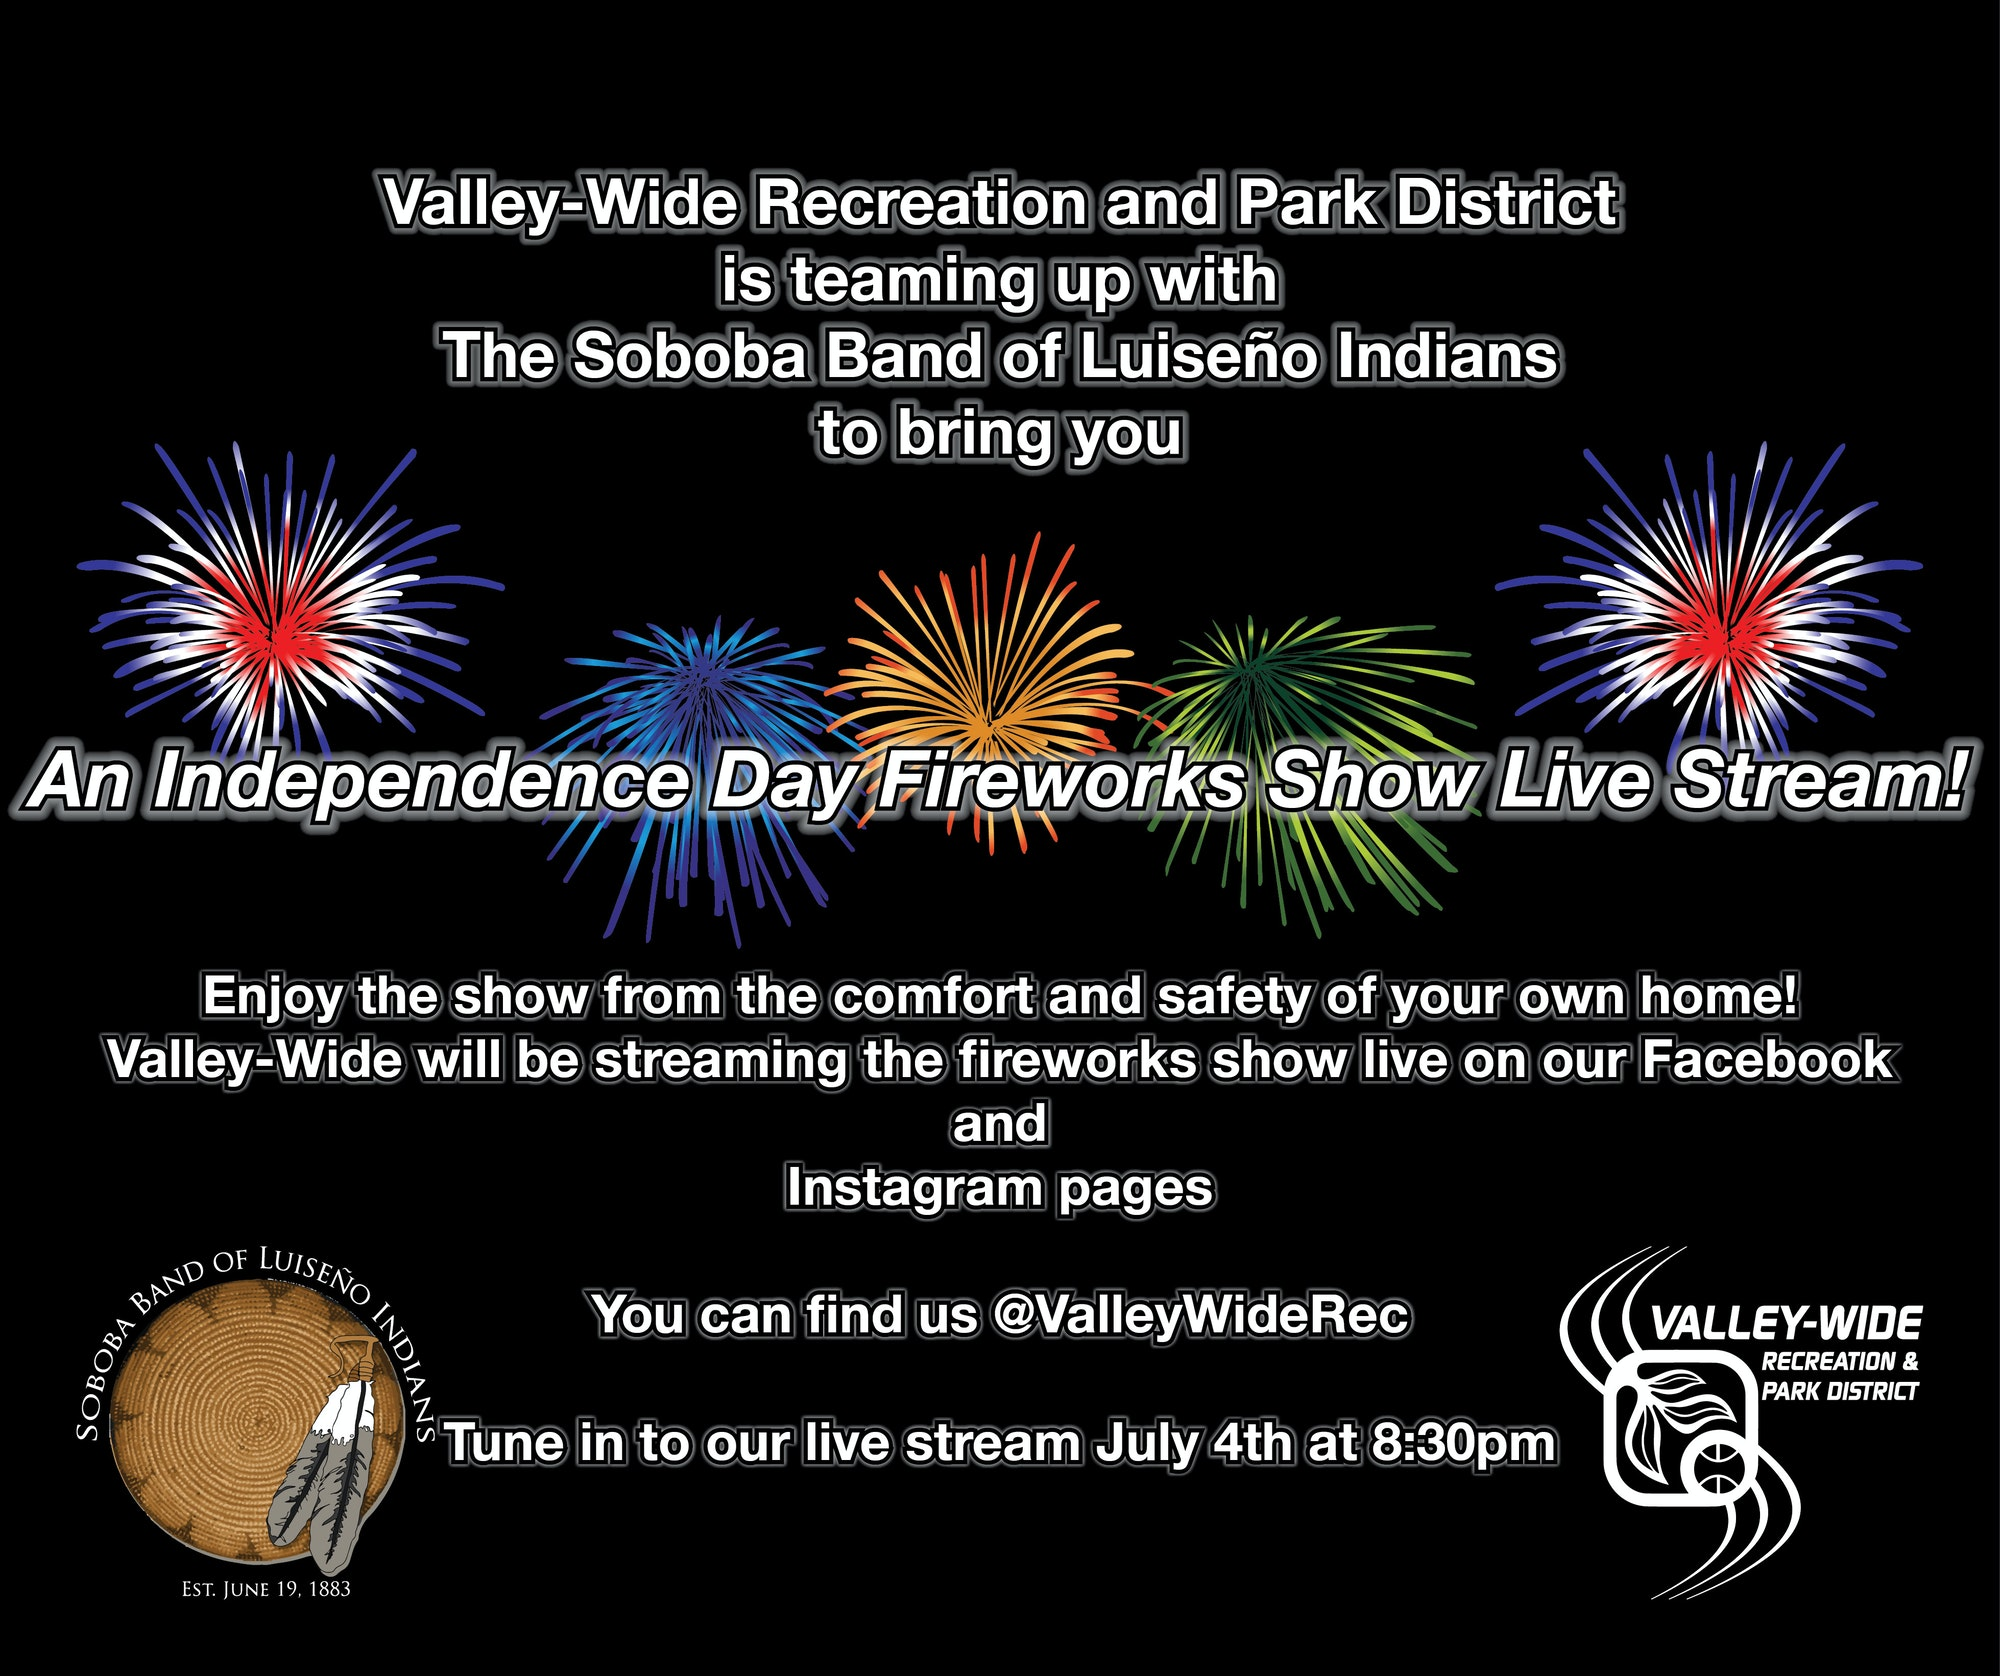 Valley-Wide Recreation and Park District is teaming up with the Soboba Band of Luiseno Indians to bring you an Independence Day Fireworks Show Live Stream! Enjoy the show from the comfort and safety of your own home! Valley-Wide will be strteaming the fireworks live on our Facebook and Instagram pages. You can find us @valleywiderec. Tune in to our liv stream July4th at 8:30pm